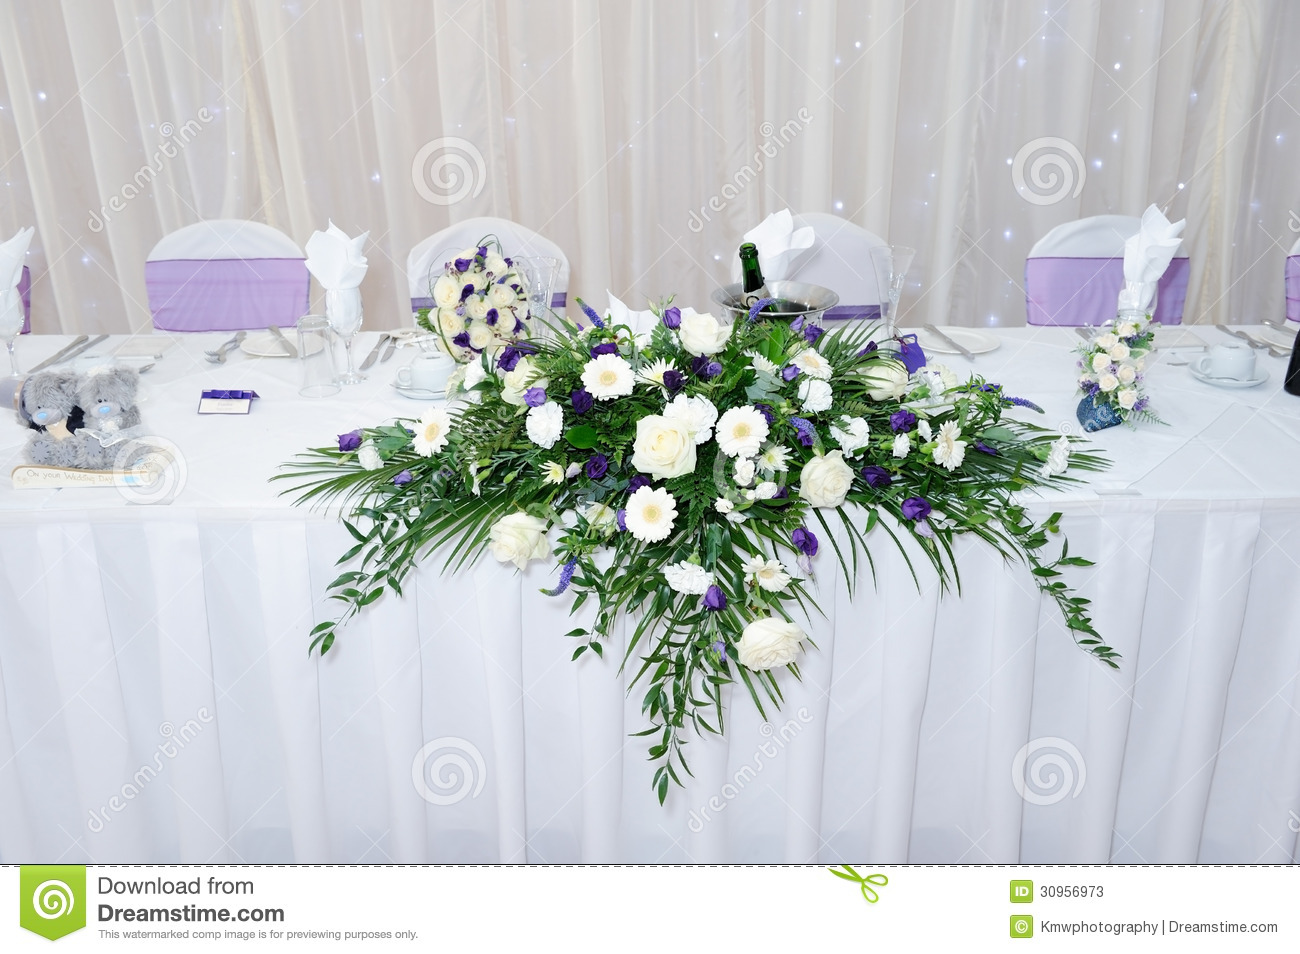 Table Decoration At Wedding Reception Stock Image - Image of ...